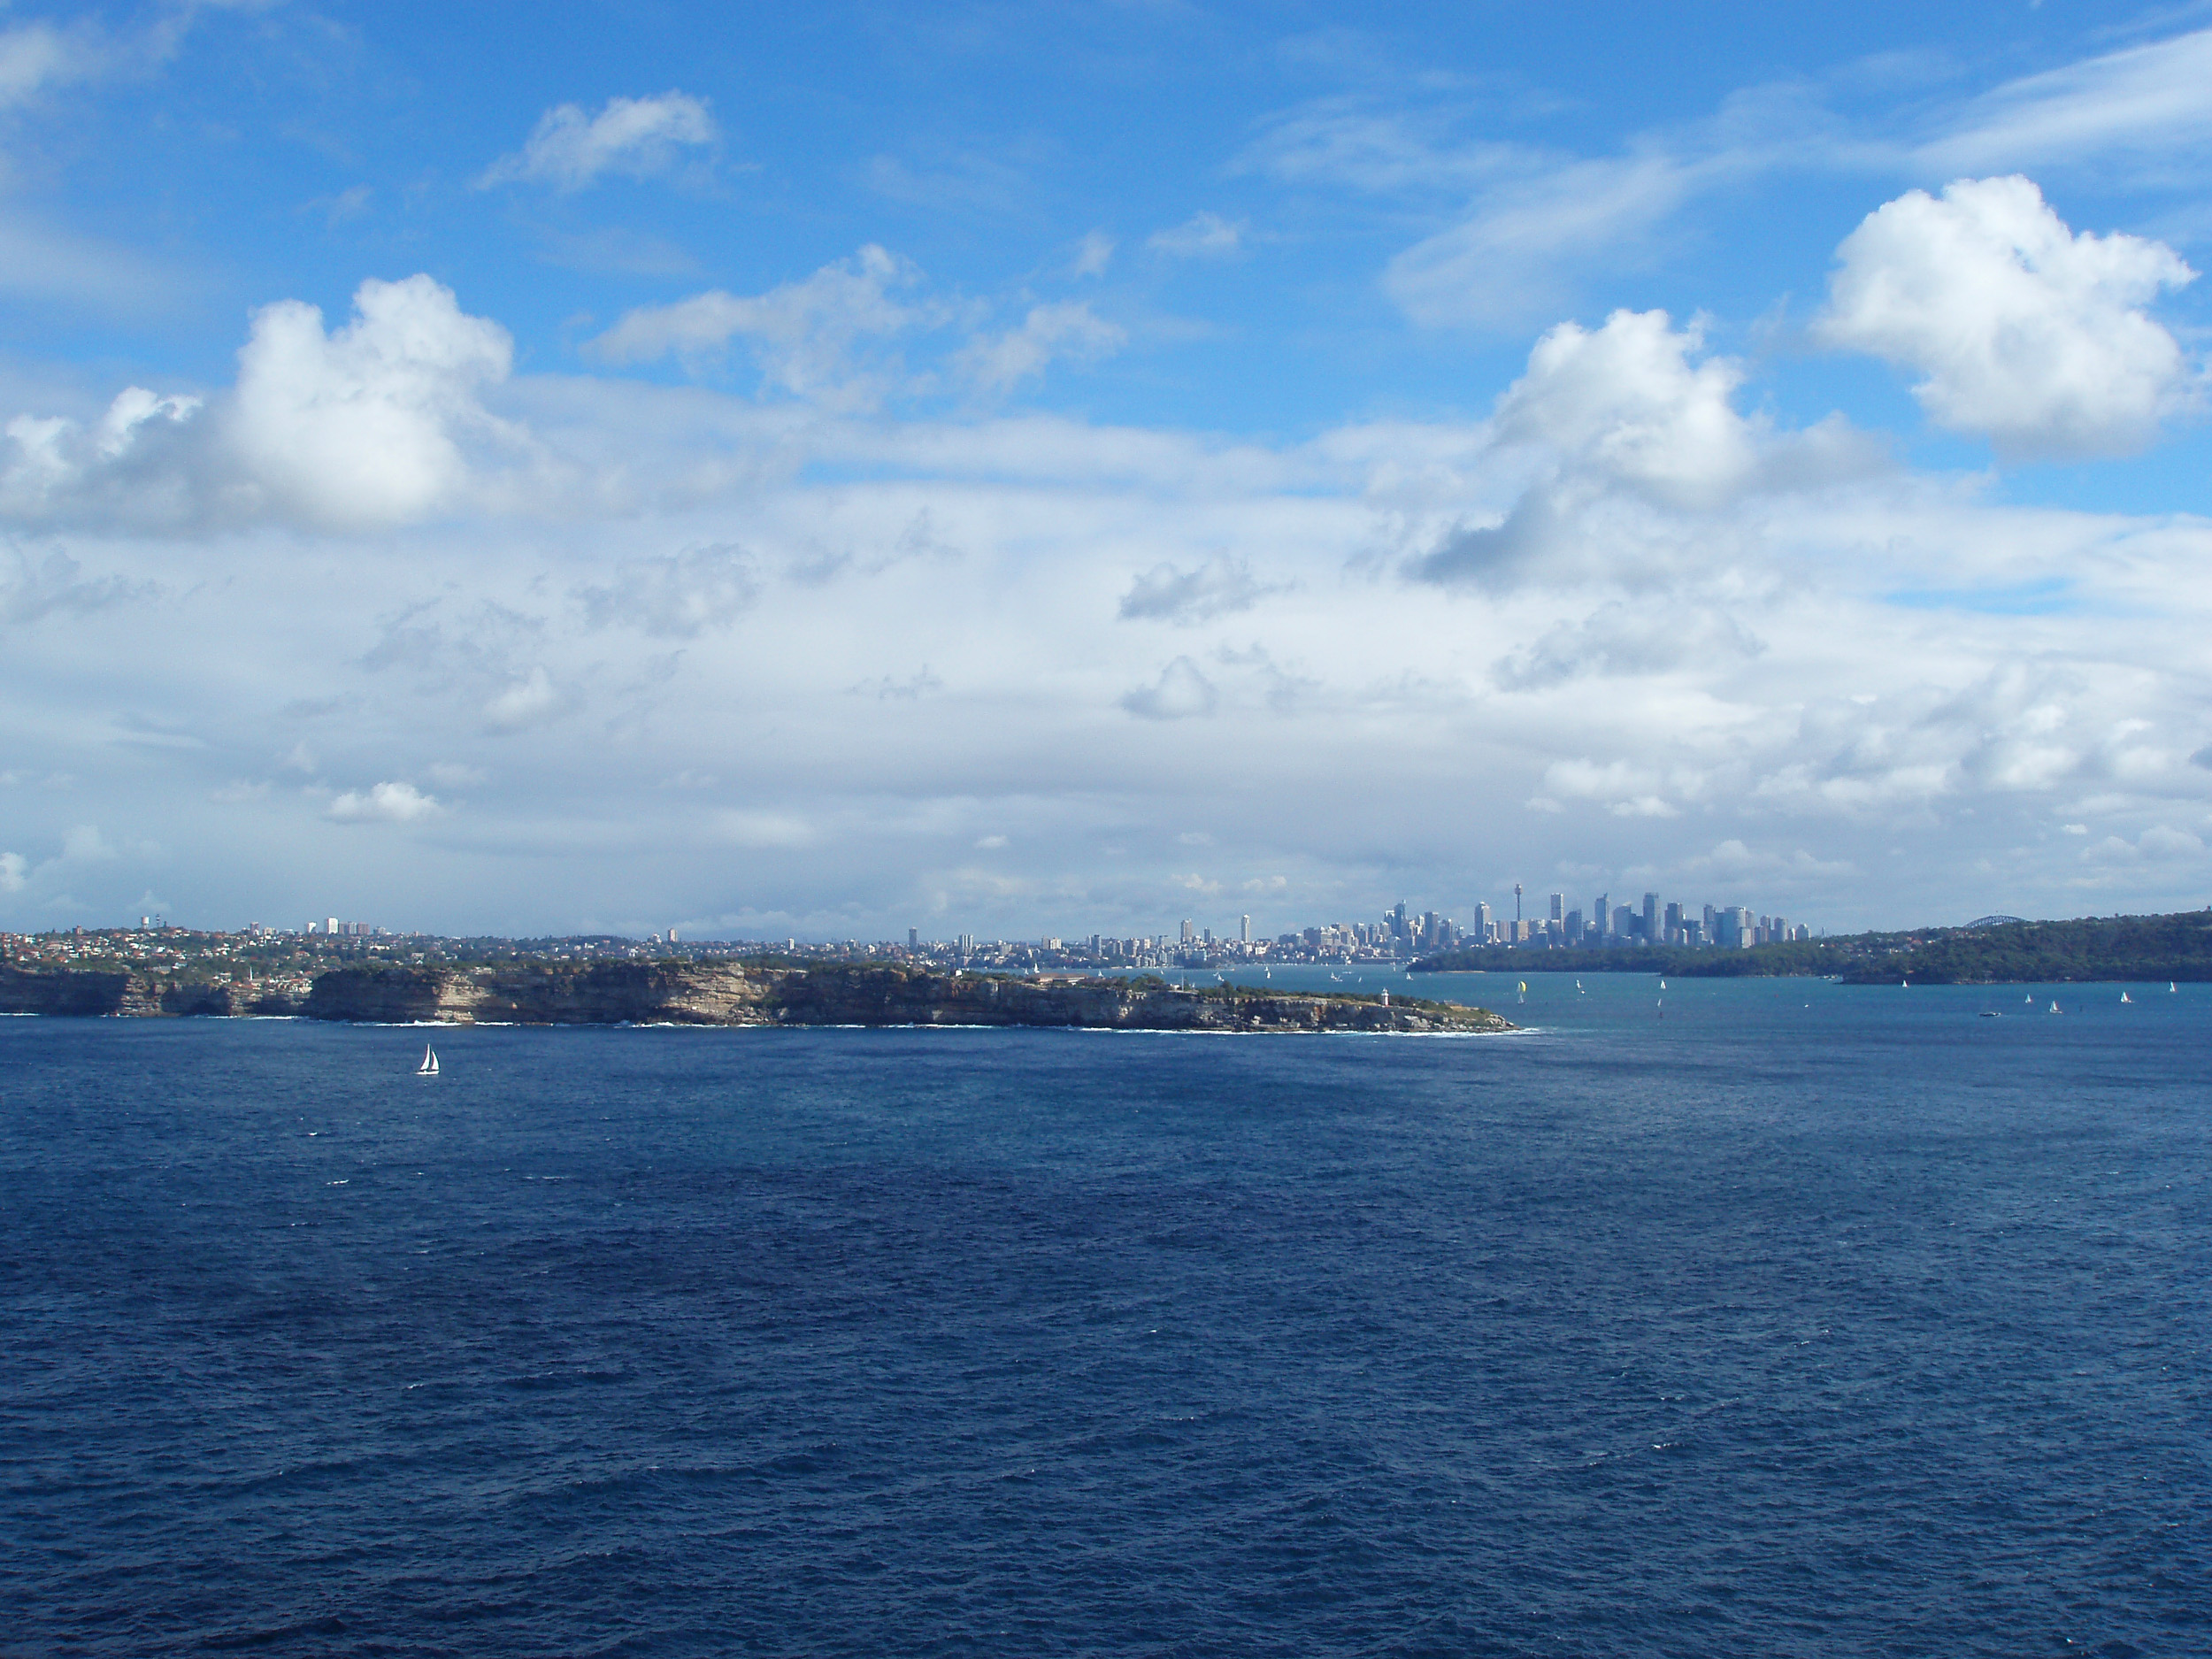 a wide angle image taking in a view of the sydney city skyline, the famous harbour and the hornby nighthouse on south head